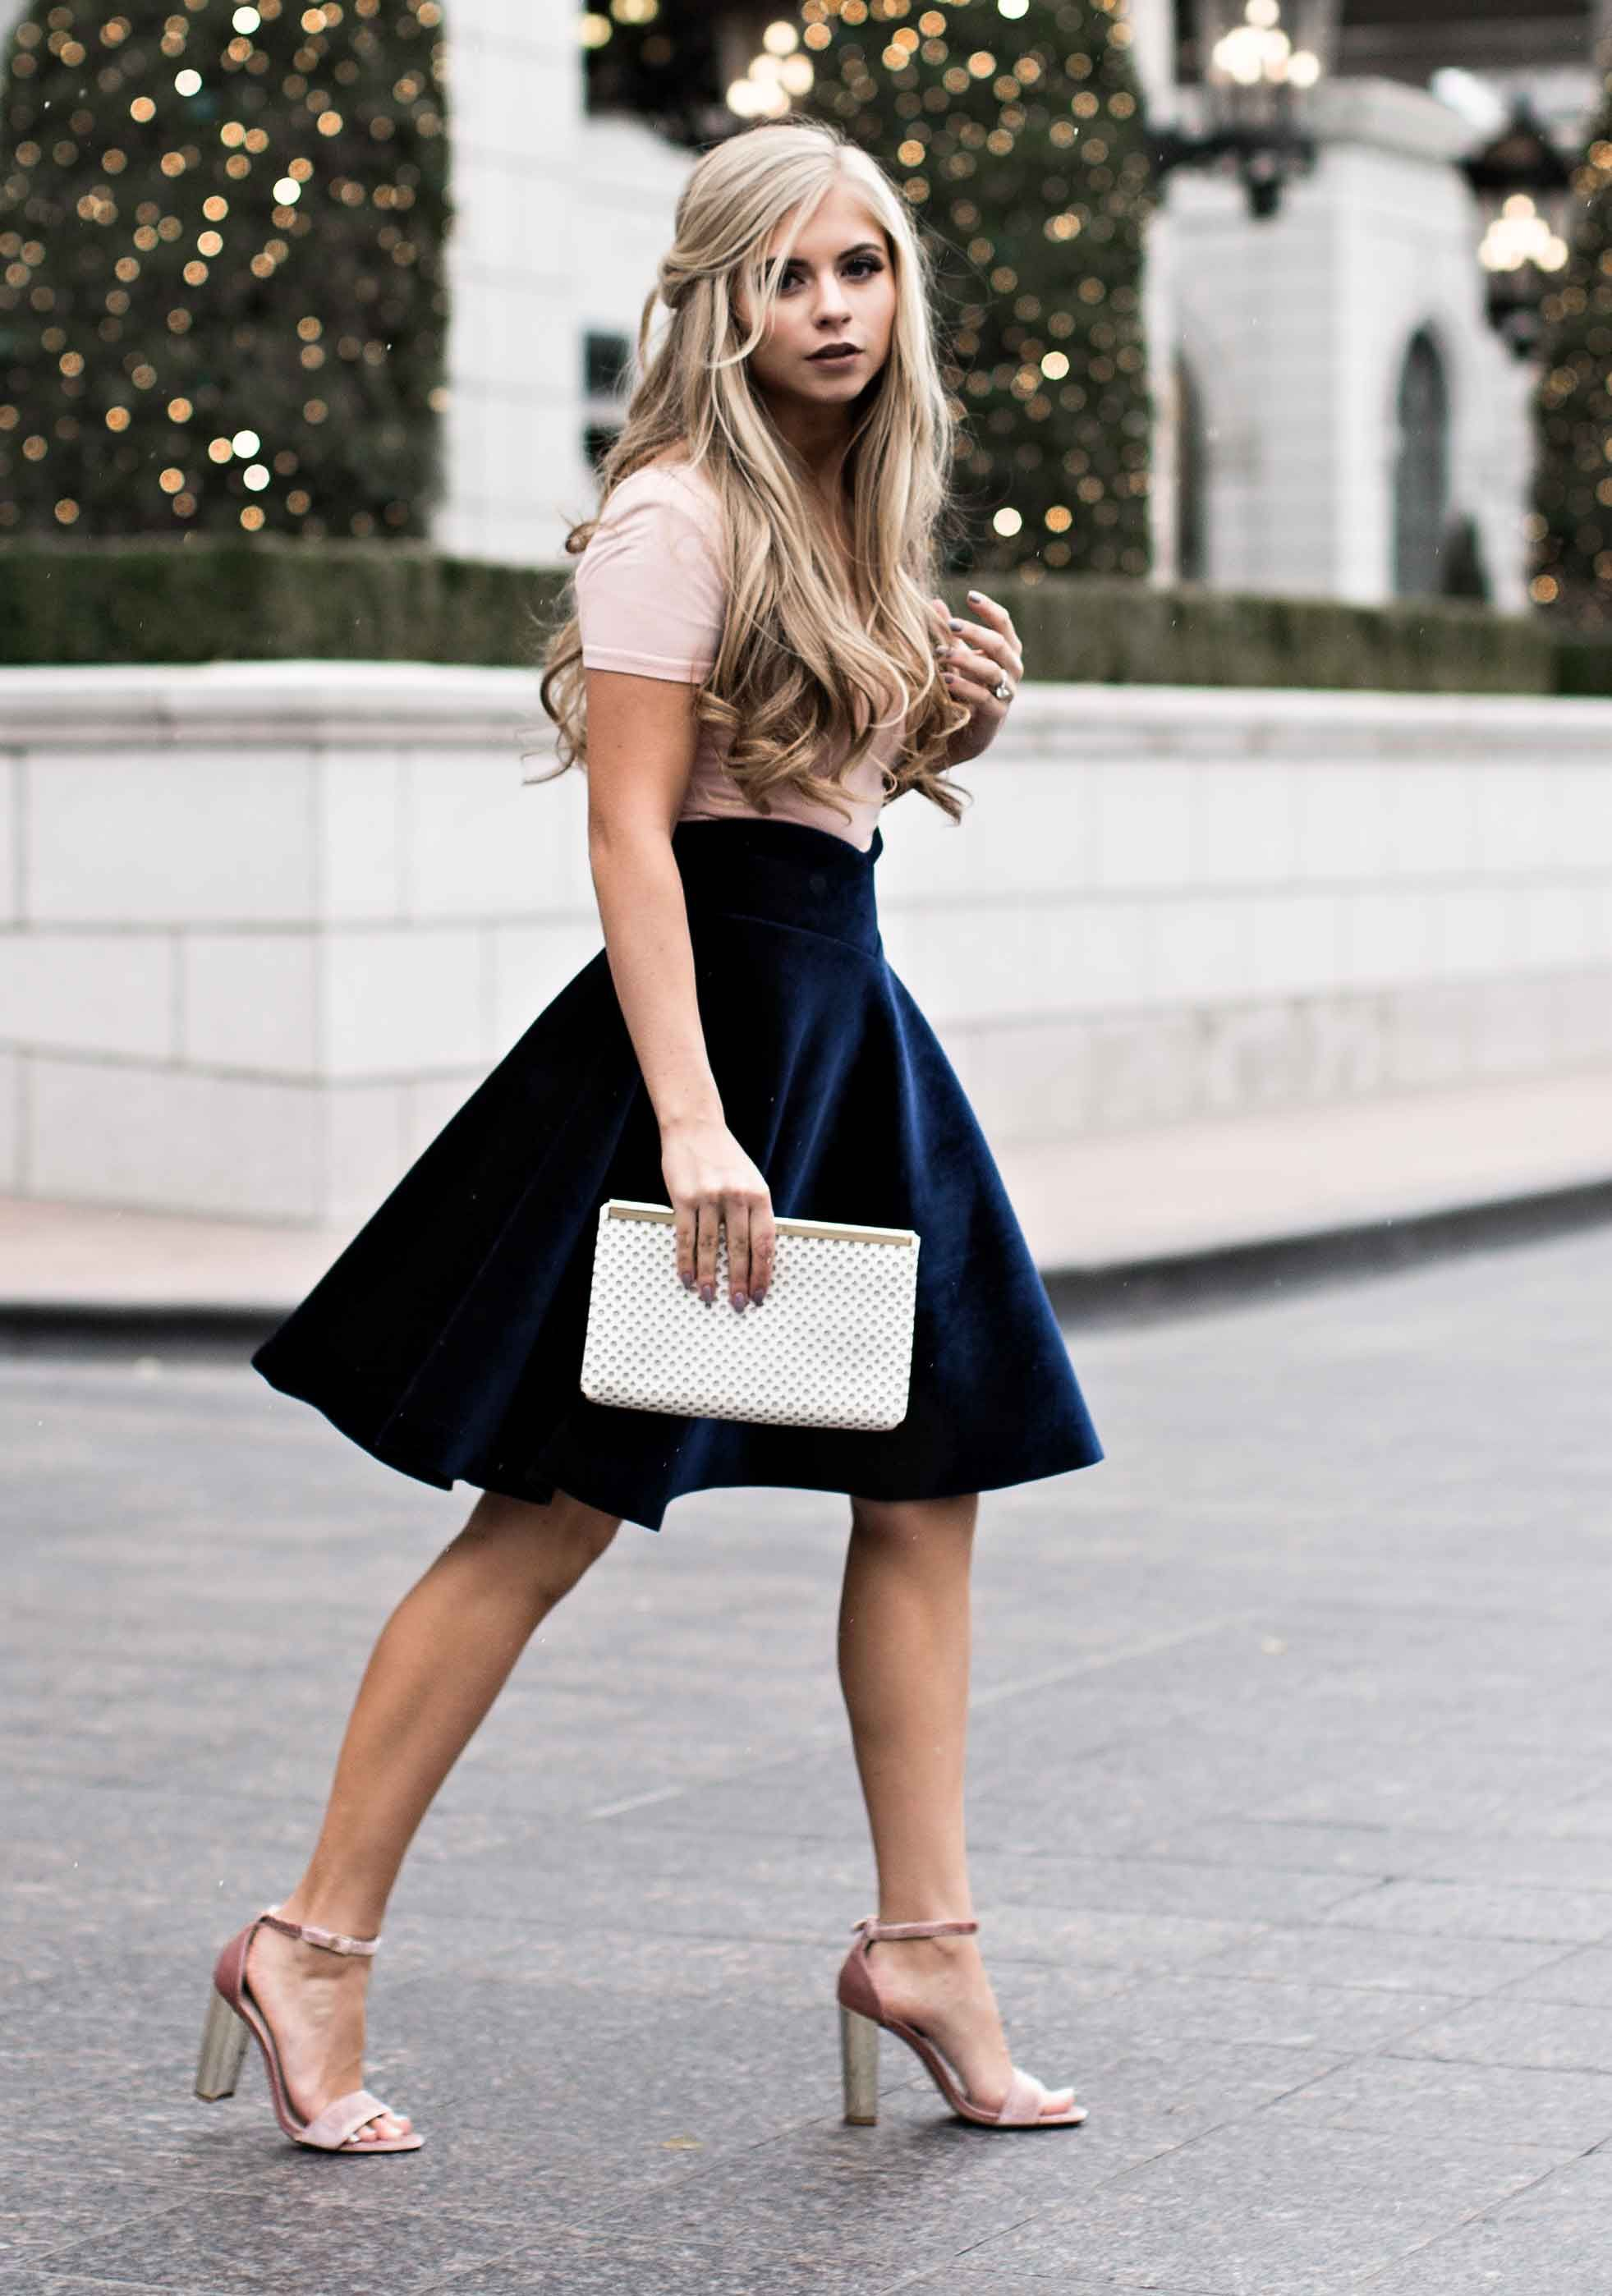 velvet skater skirt | fashion | Fashion, Holiday fashion ...